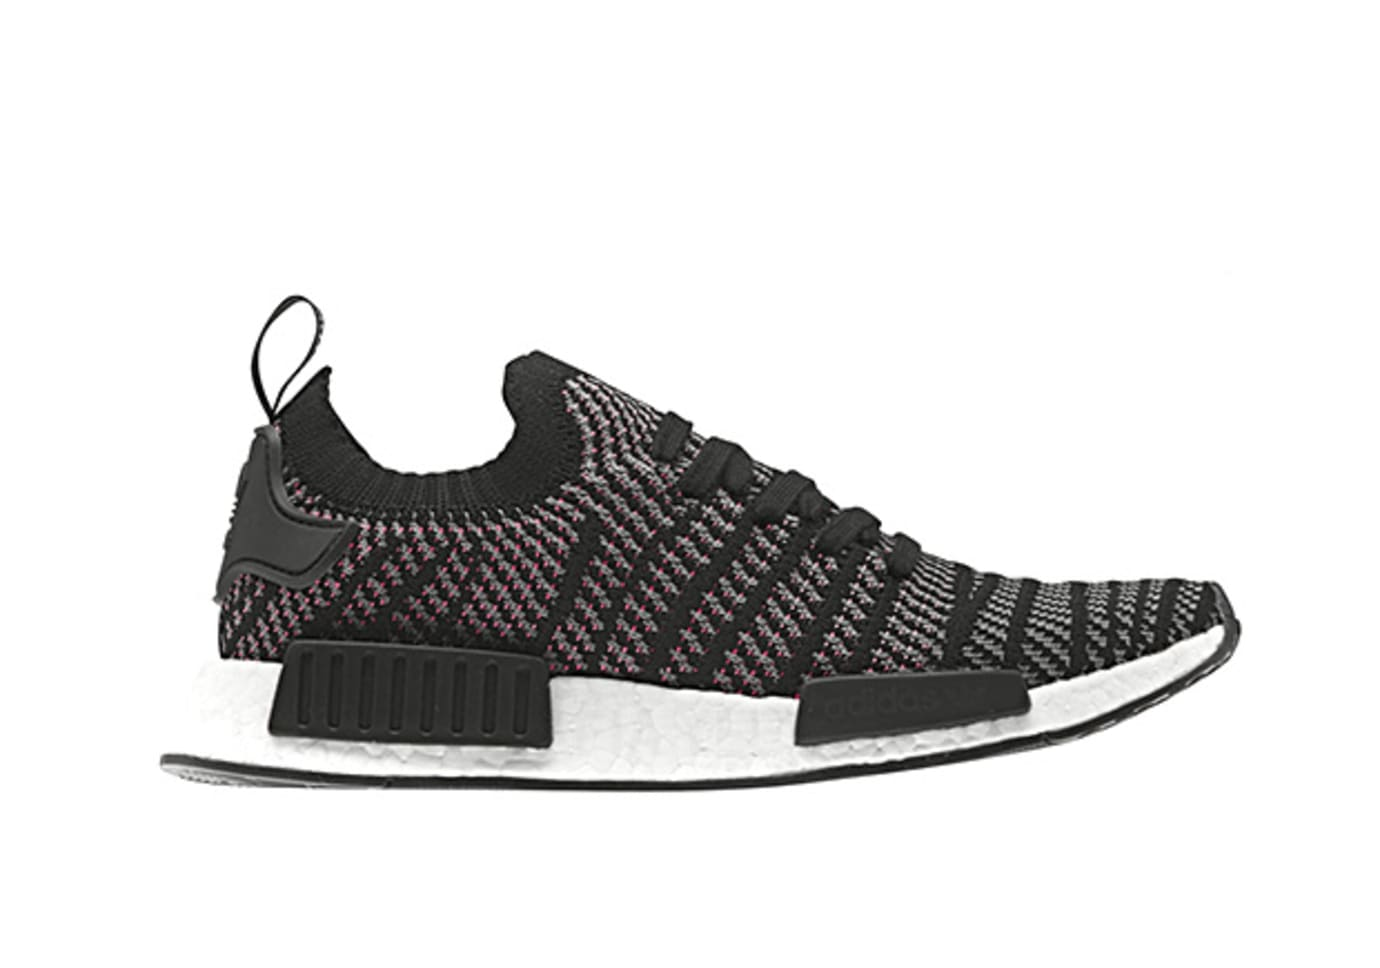 Adidas Nmd Stlt 2018 Release Date Sole Collector